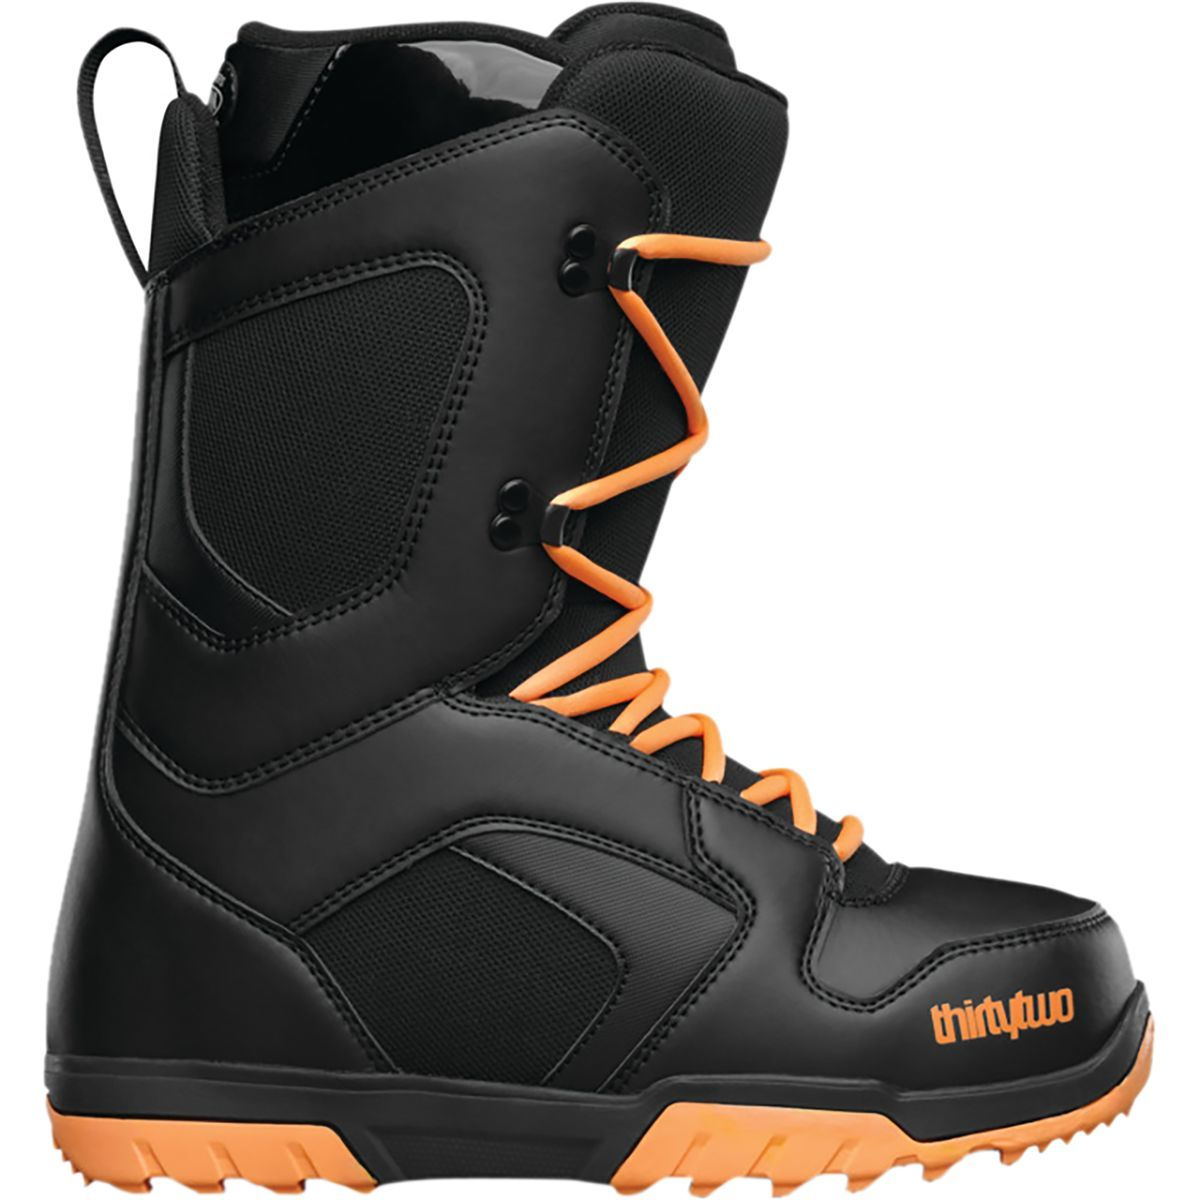 ThirtyTwo Exit Black/Orange Snowboard Boot Støvle